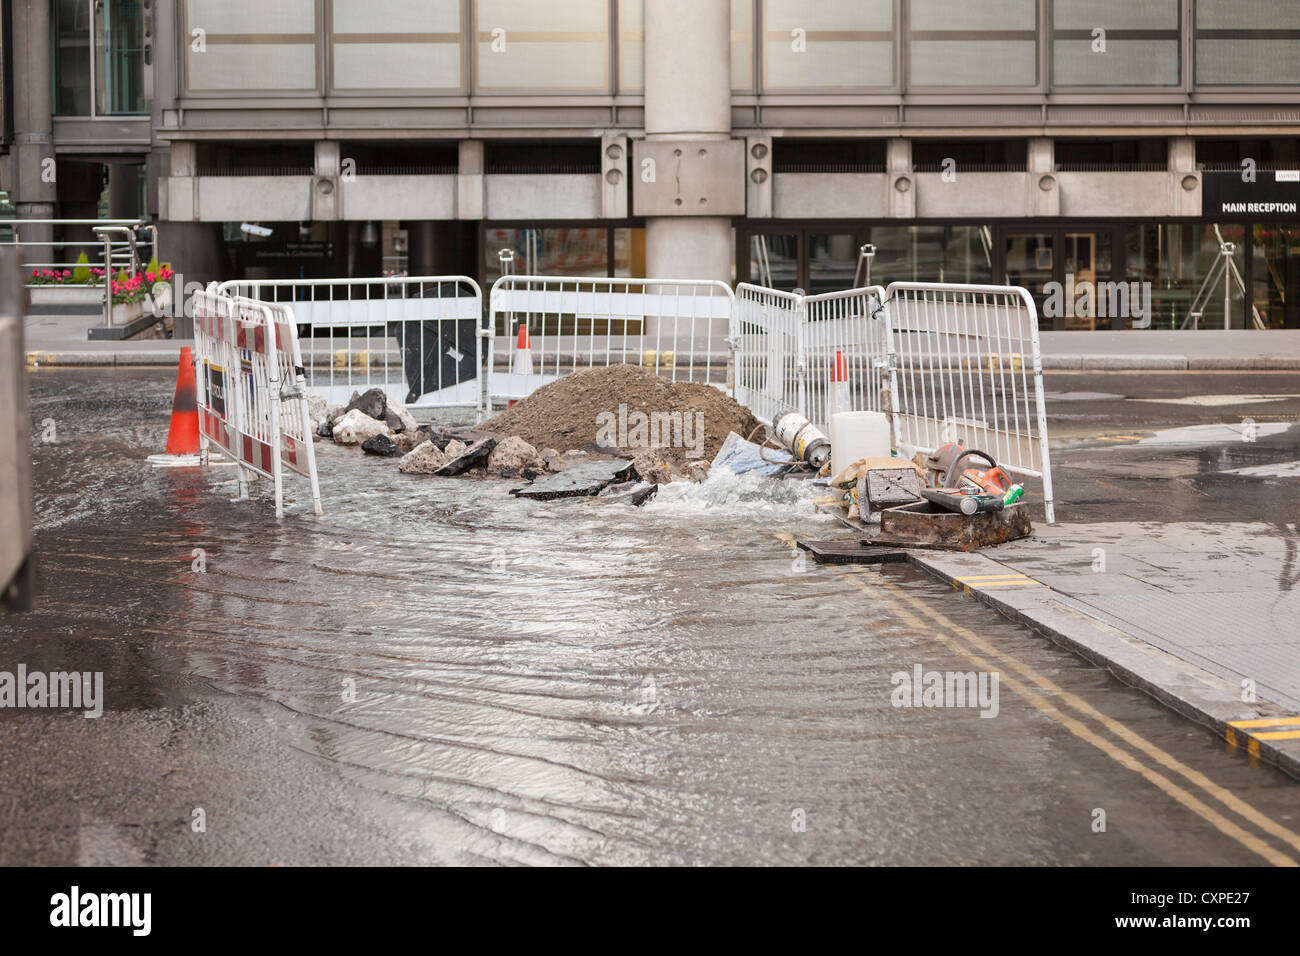 Water leak, London, UK - Stock Image